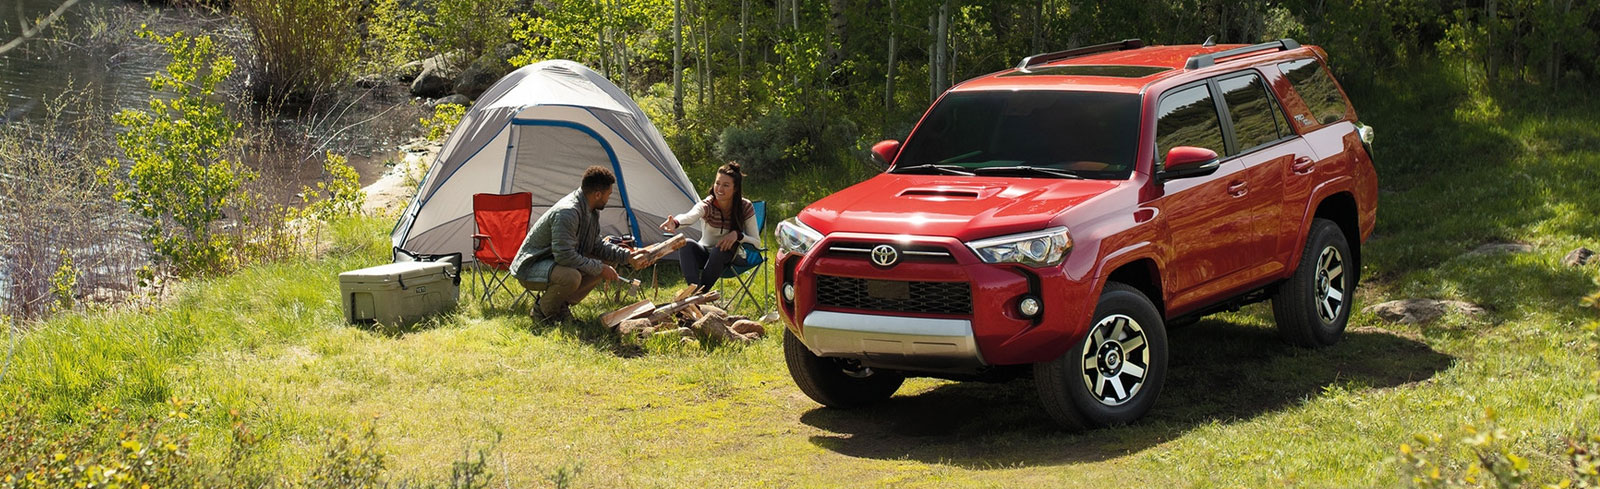 2020 Toyota 4Runner SUV in Oklahoma City, near Edmond, OK